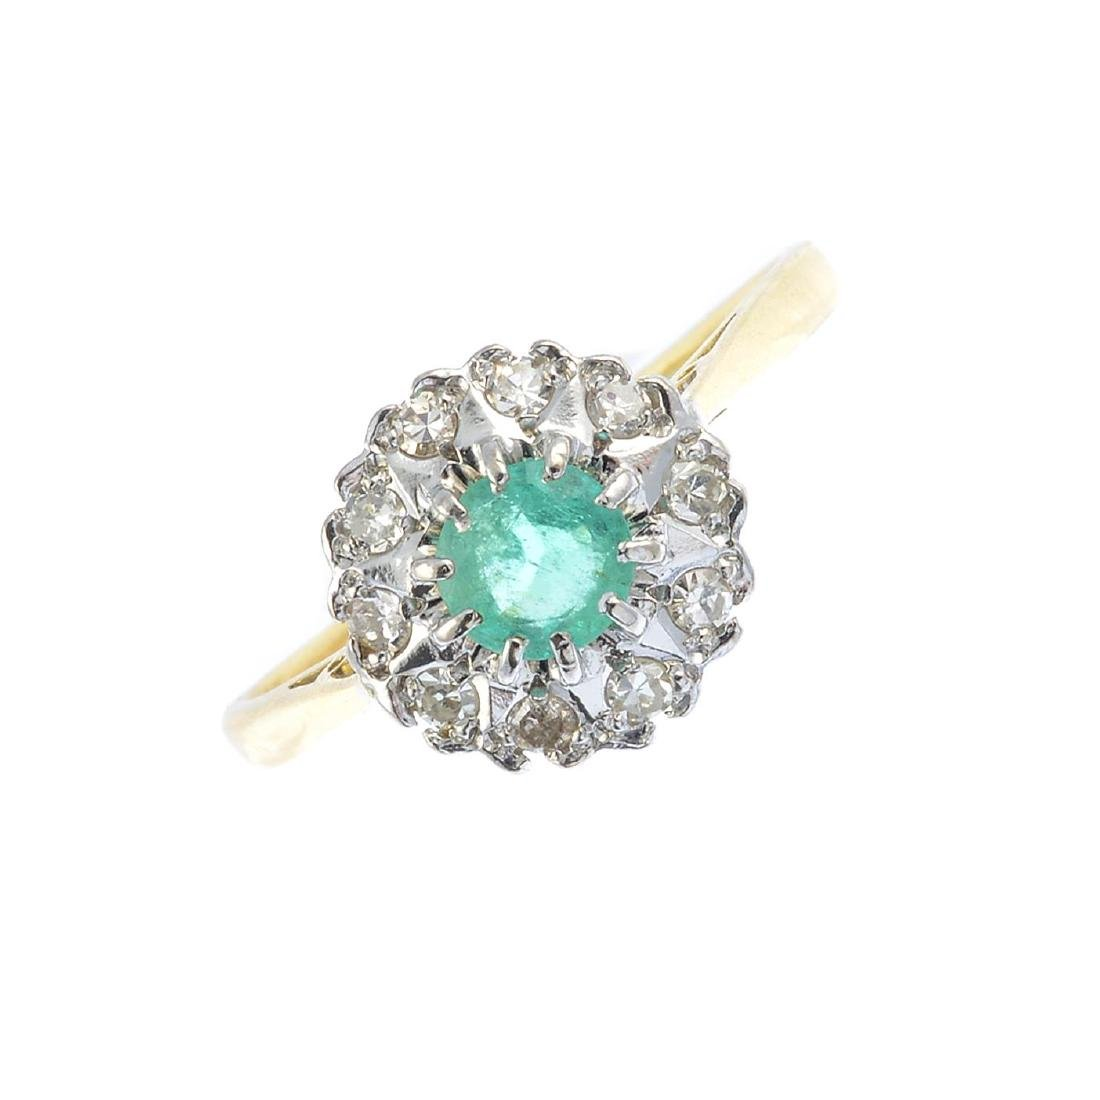 An emerald and diamond cluster ring. The circular-shape